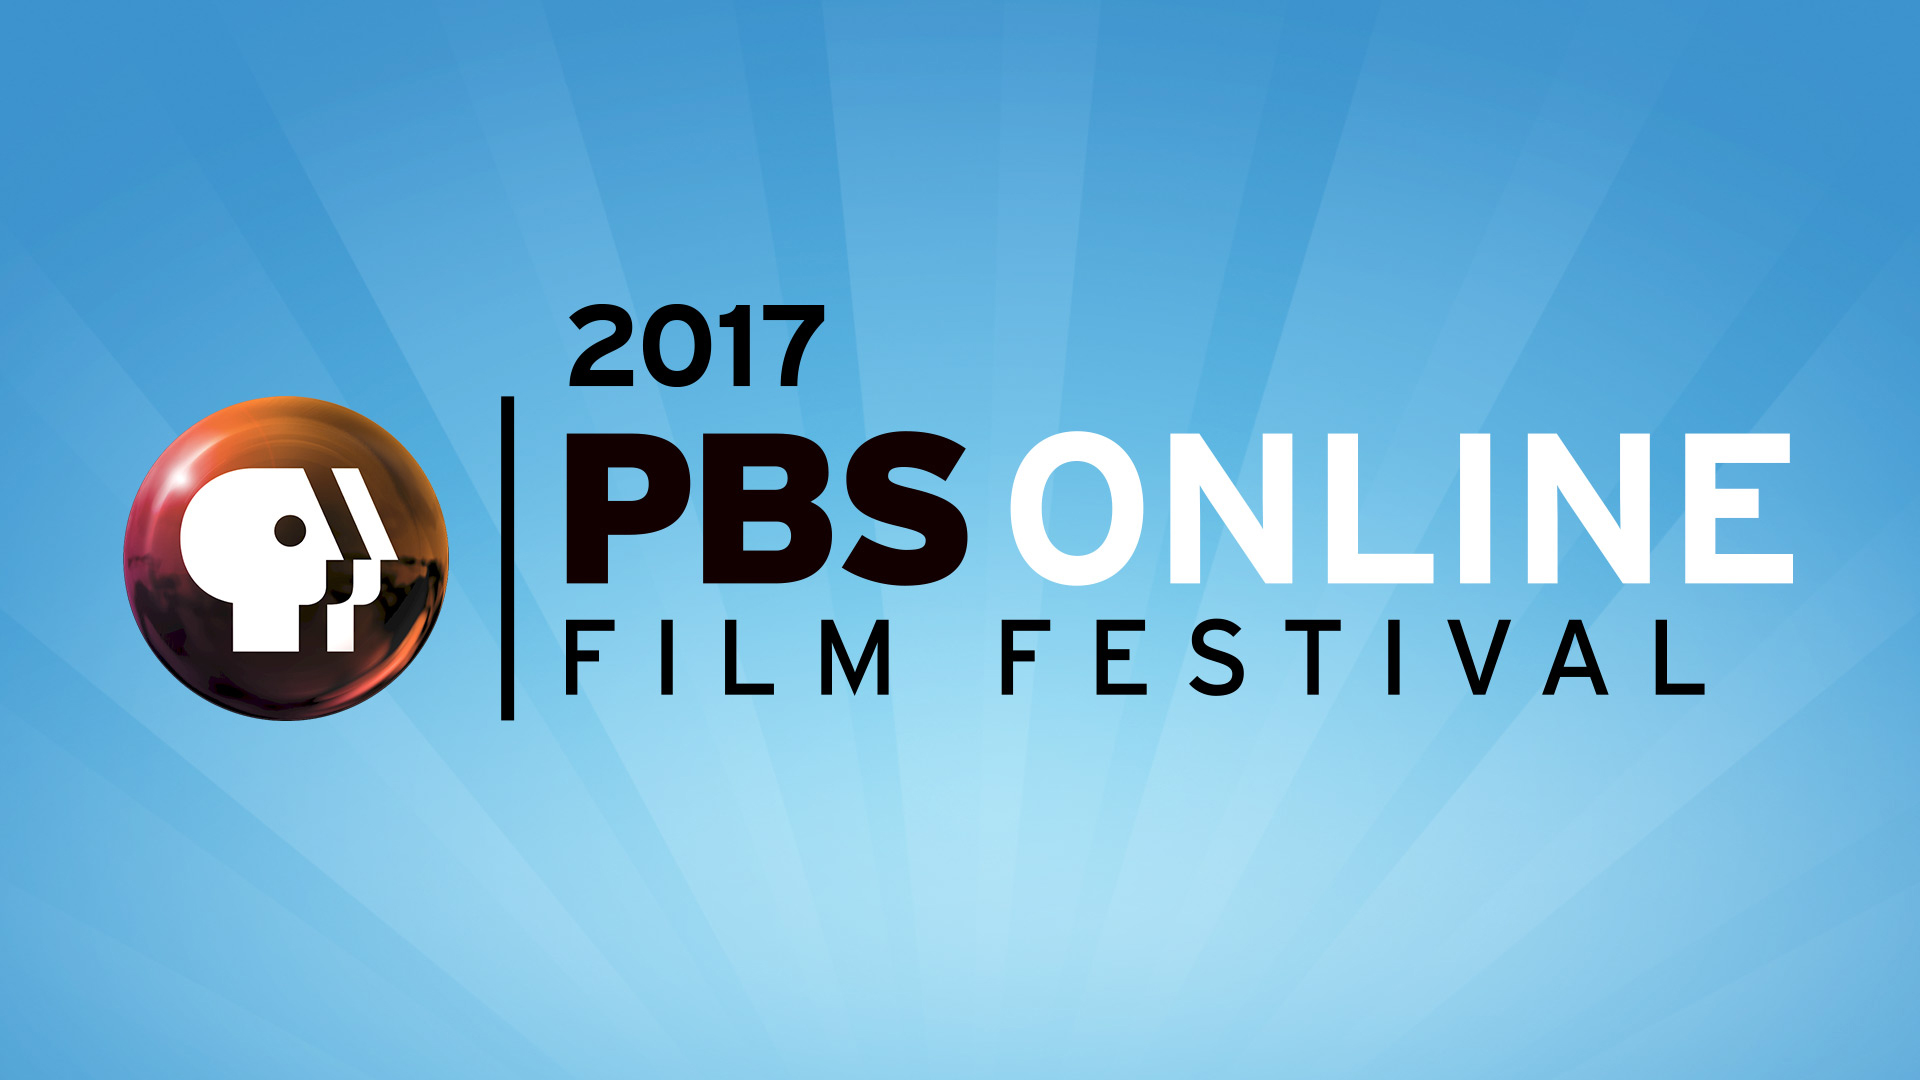 Since its launch in 2012, the PBS Online Film Festival has featured diverse films from PBS member stations and ITVS and POV. Through July 28, viewers can watch, vote and share their favorites.